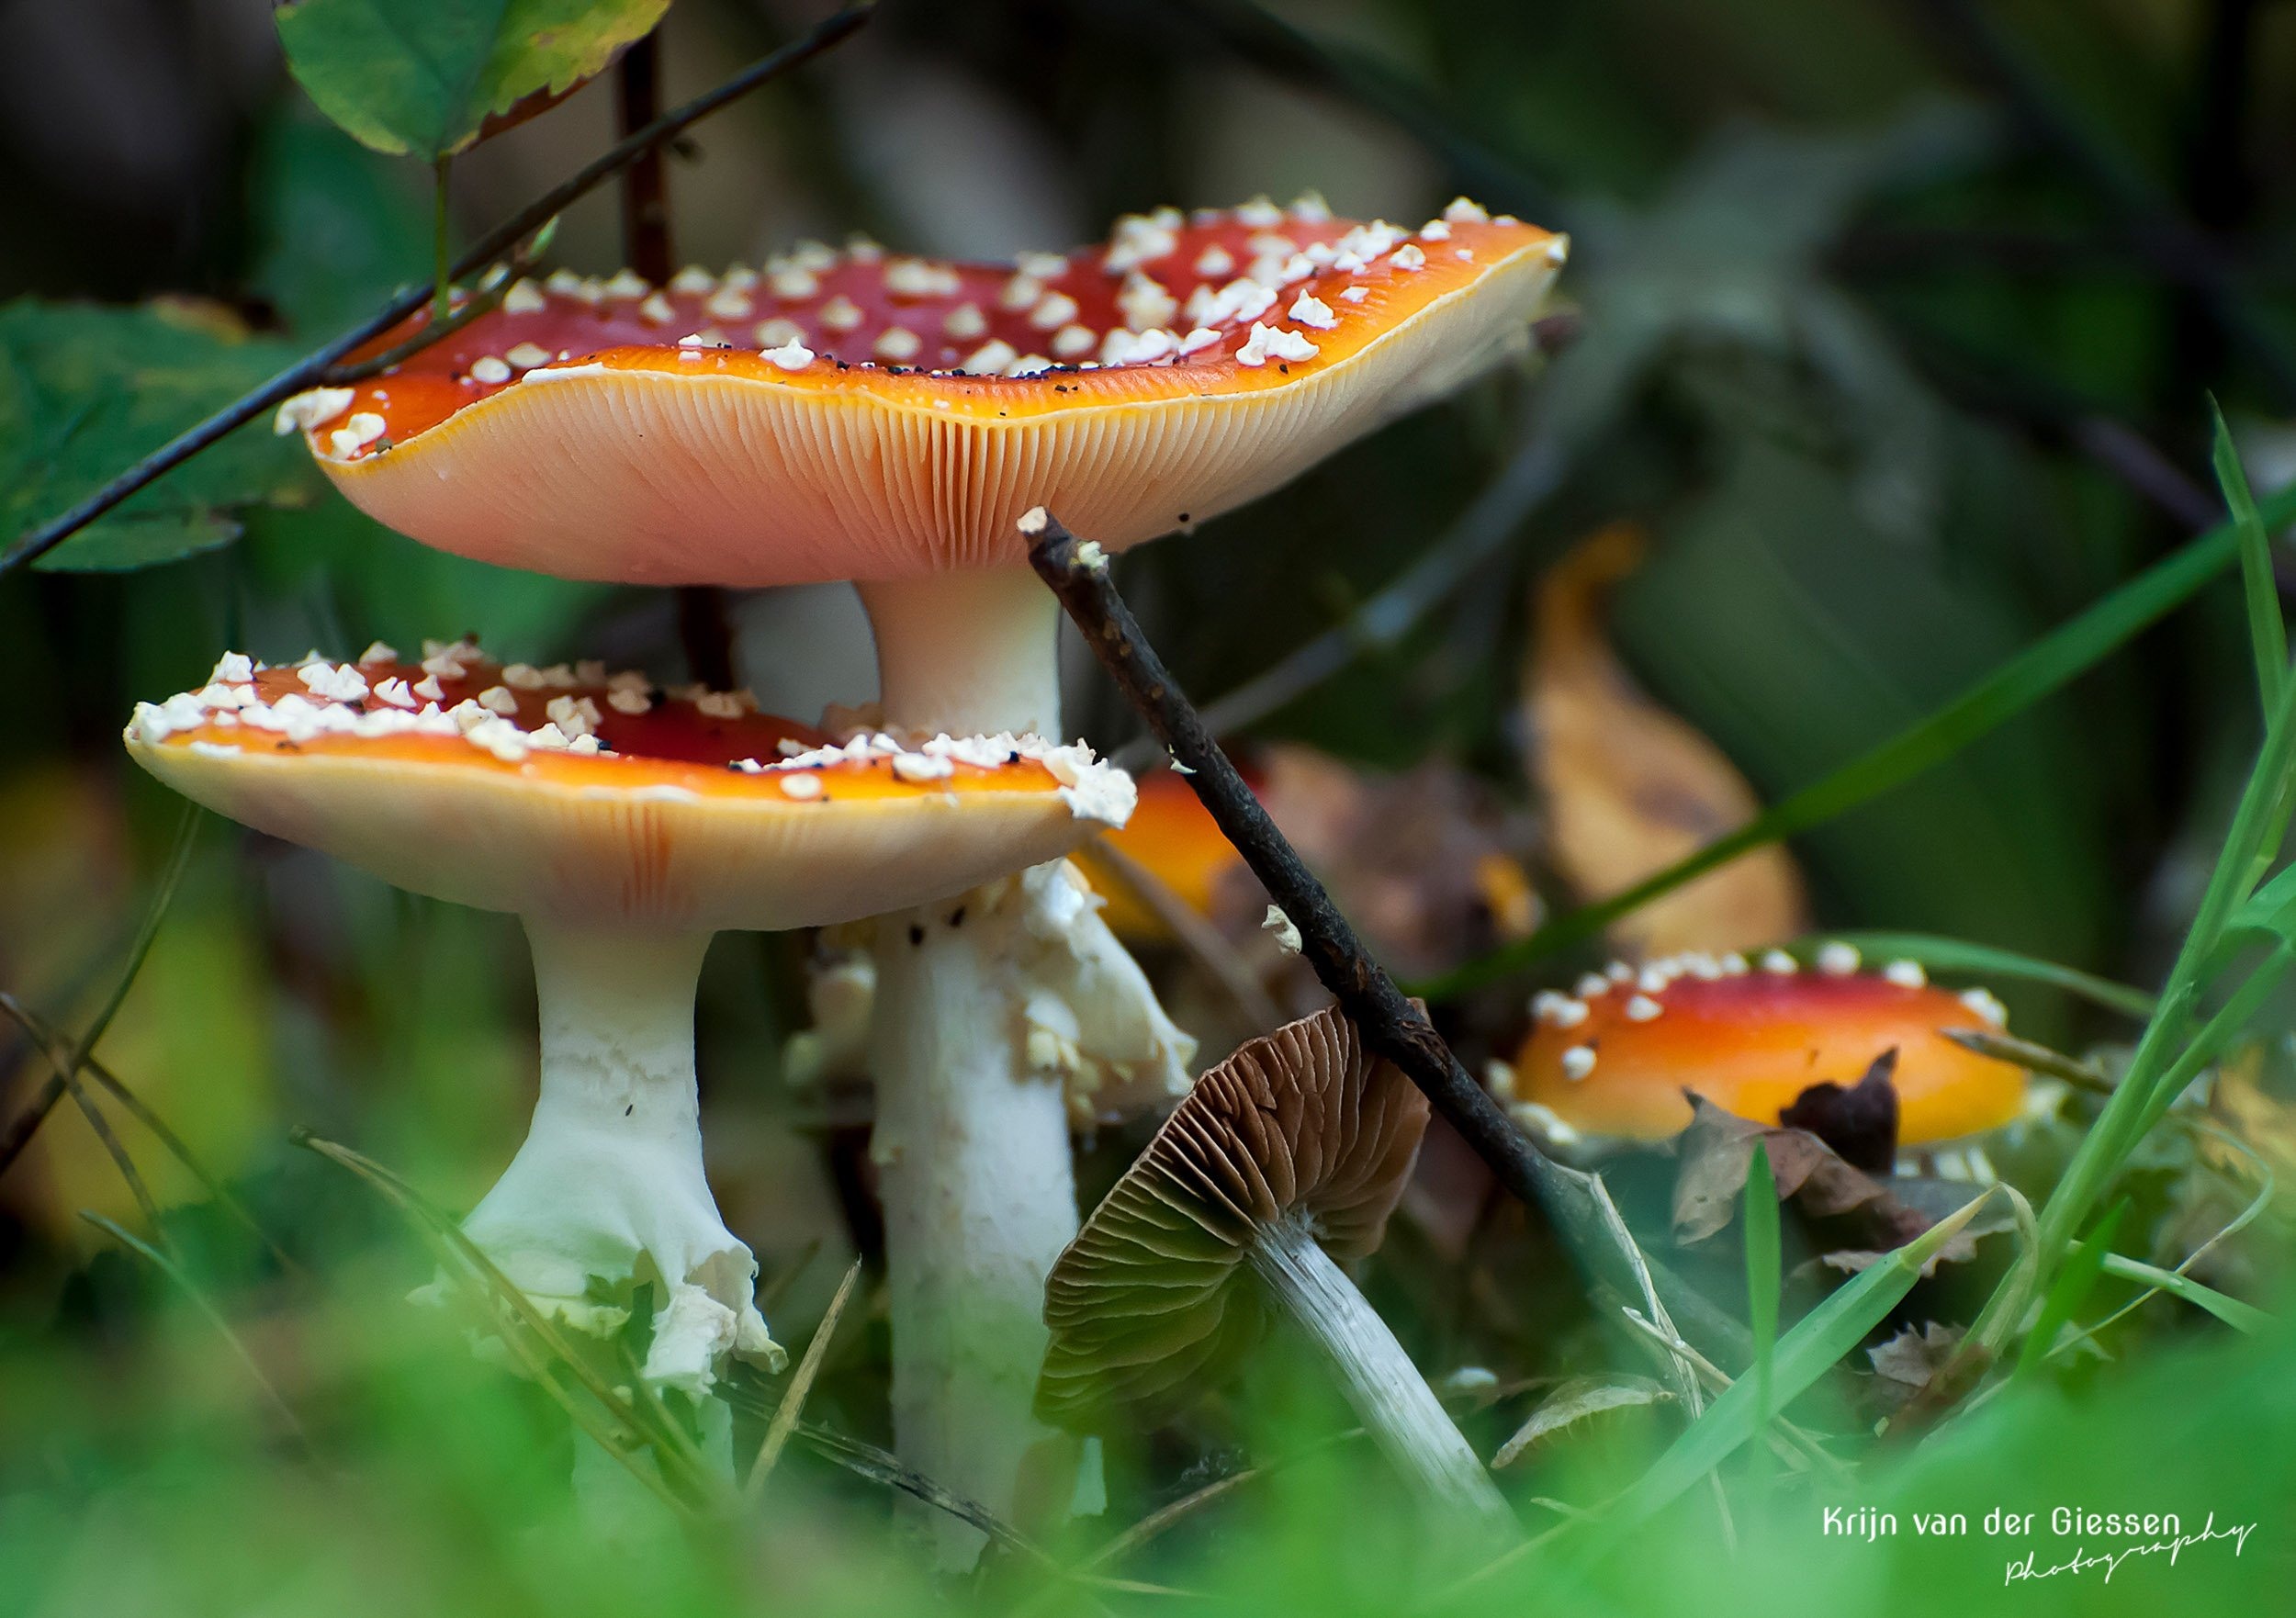 Mushrooms in forest by Krijn van der Giessen Photography